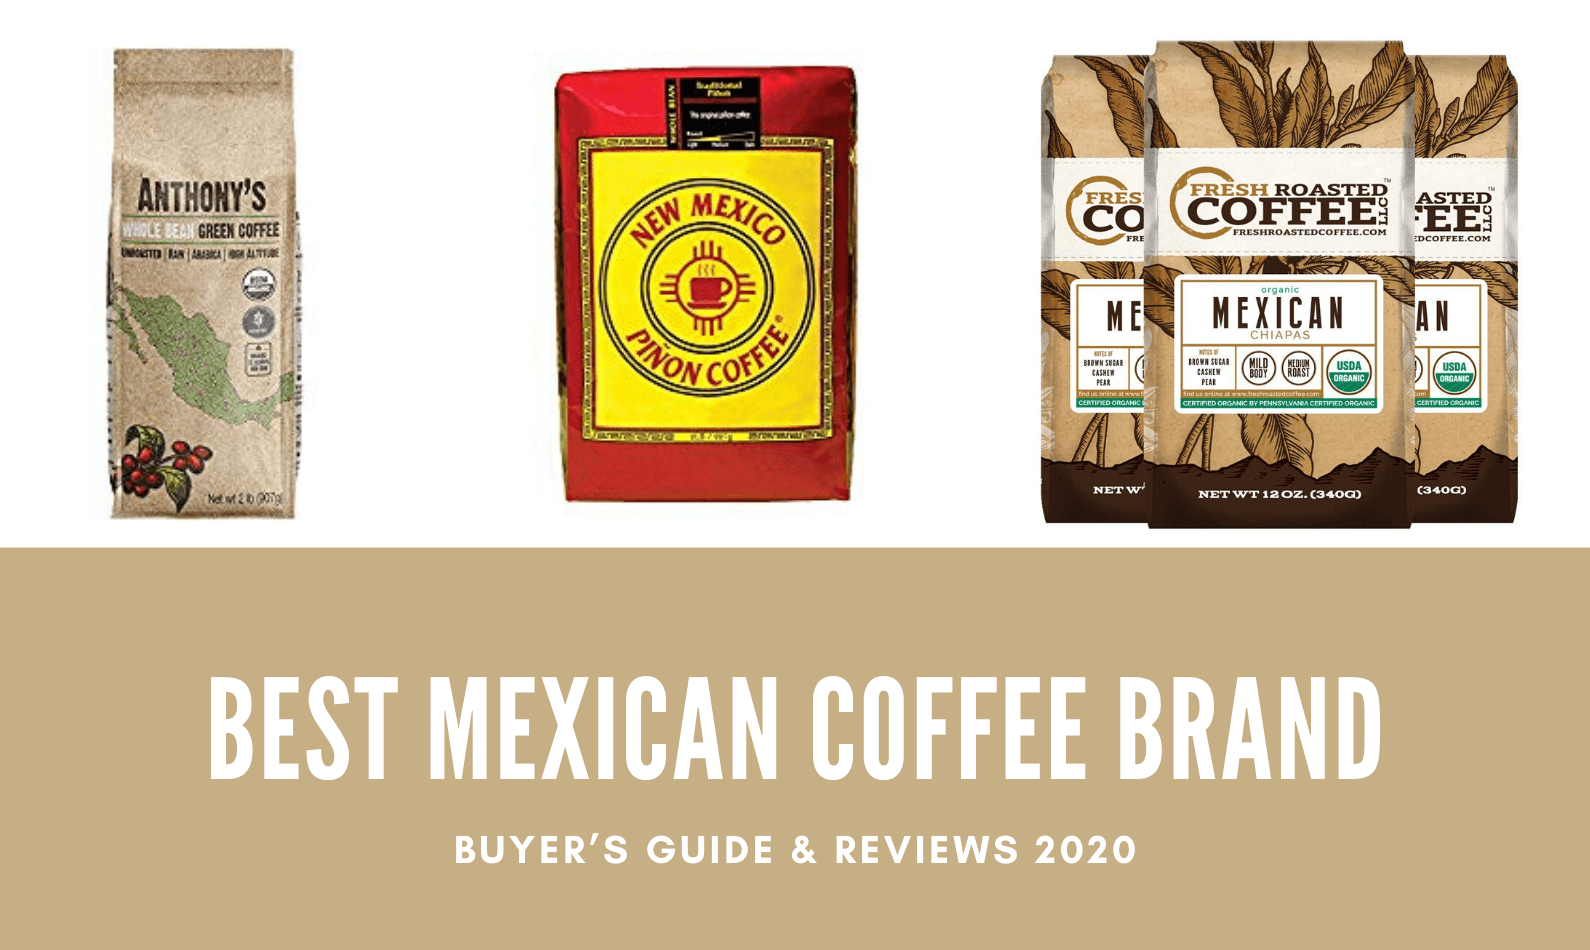 Best Mexican Coffee Brand